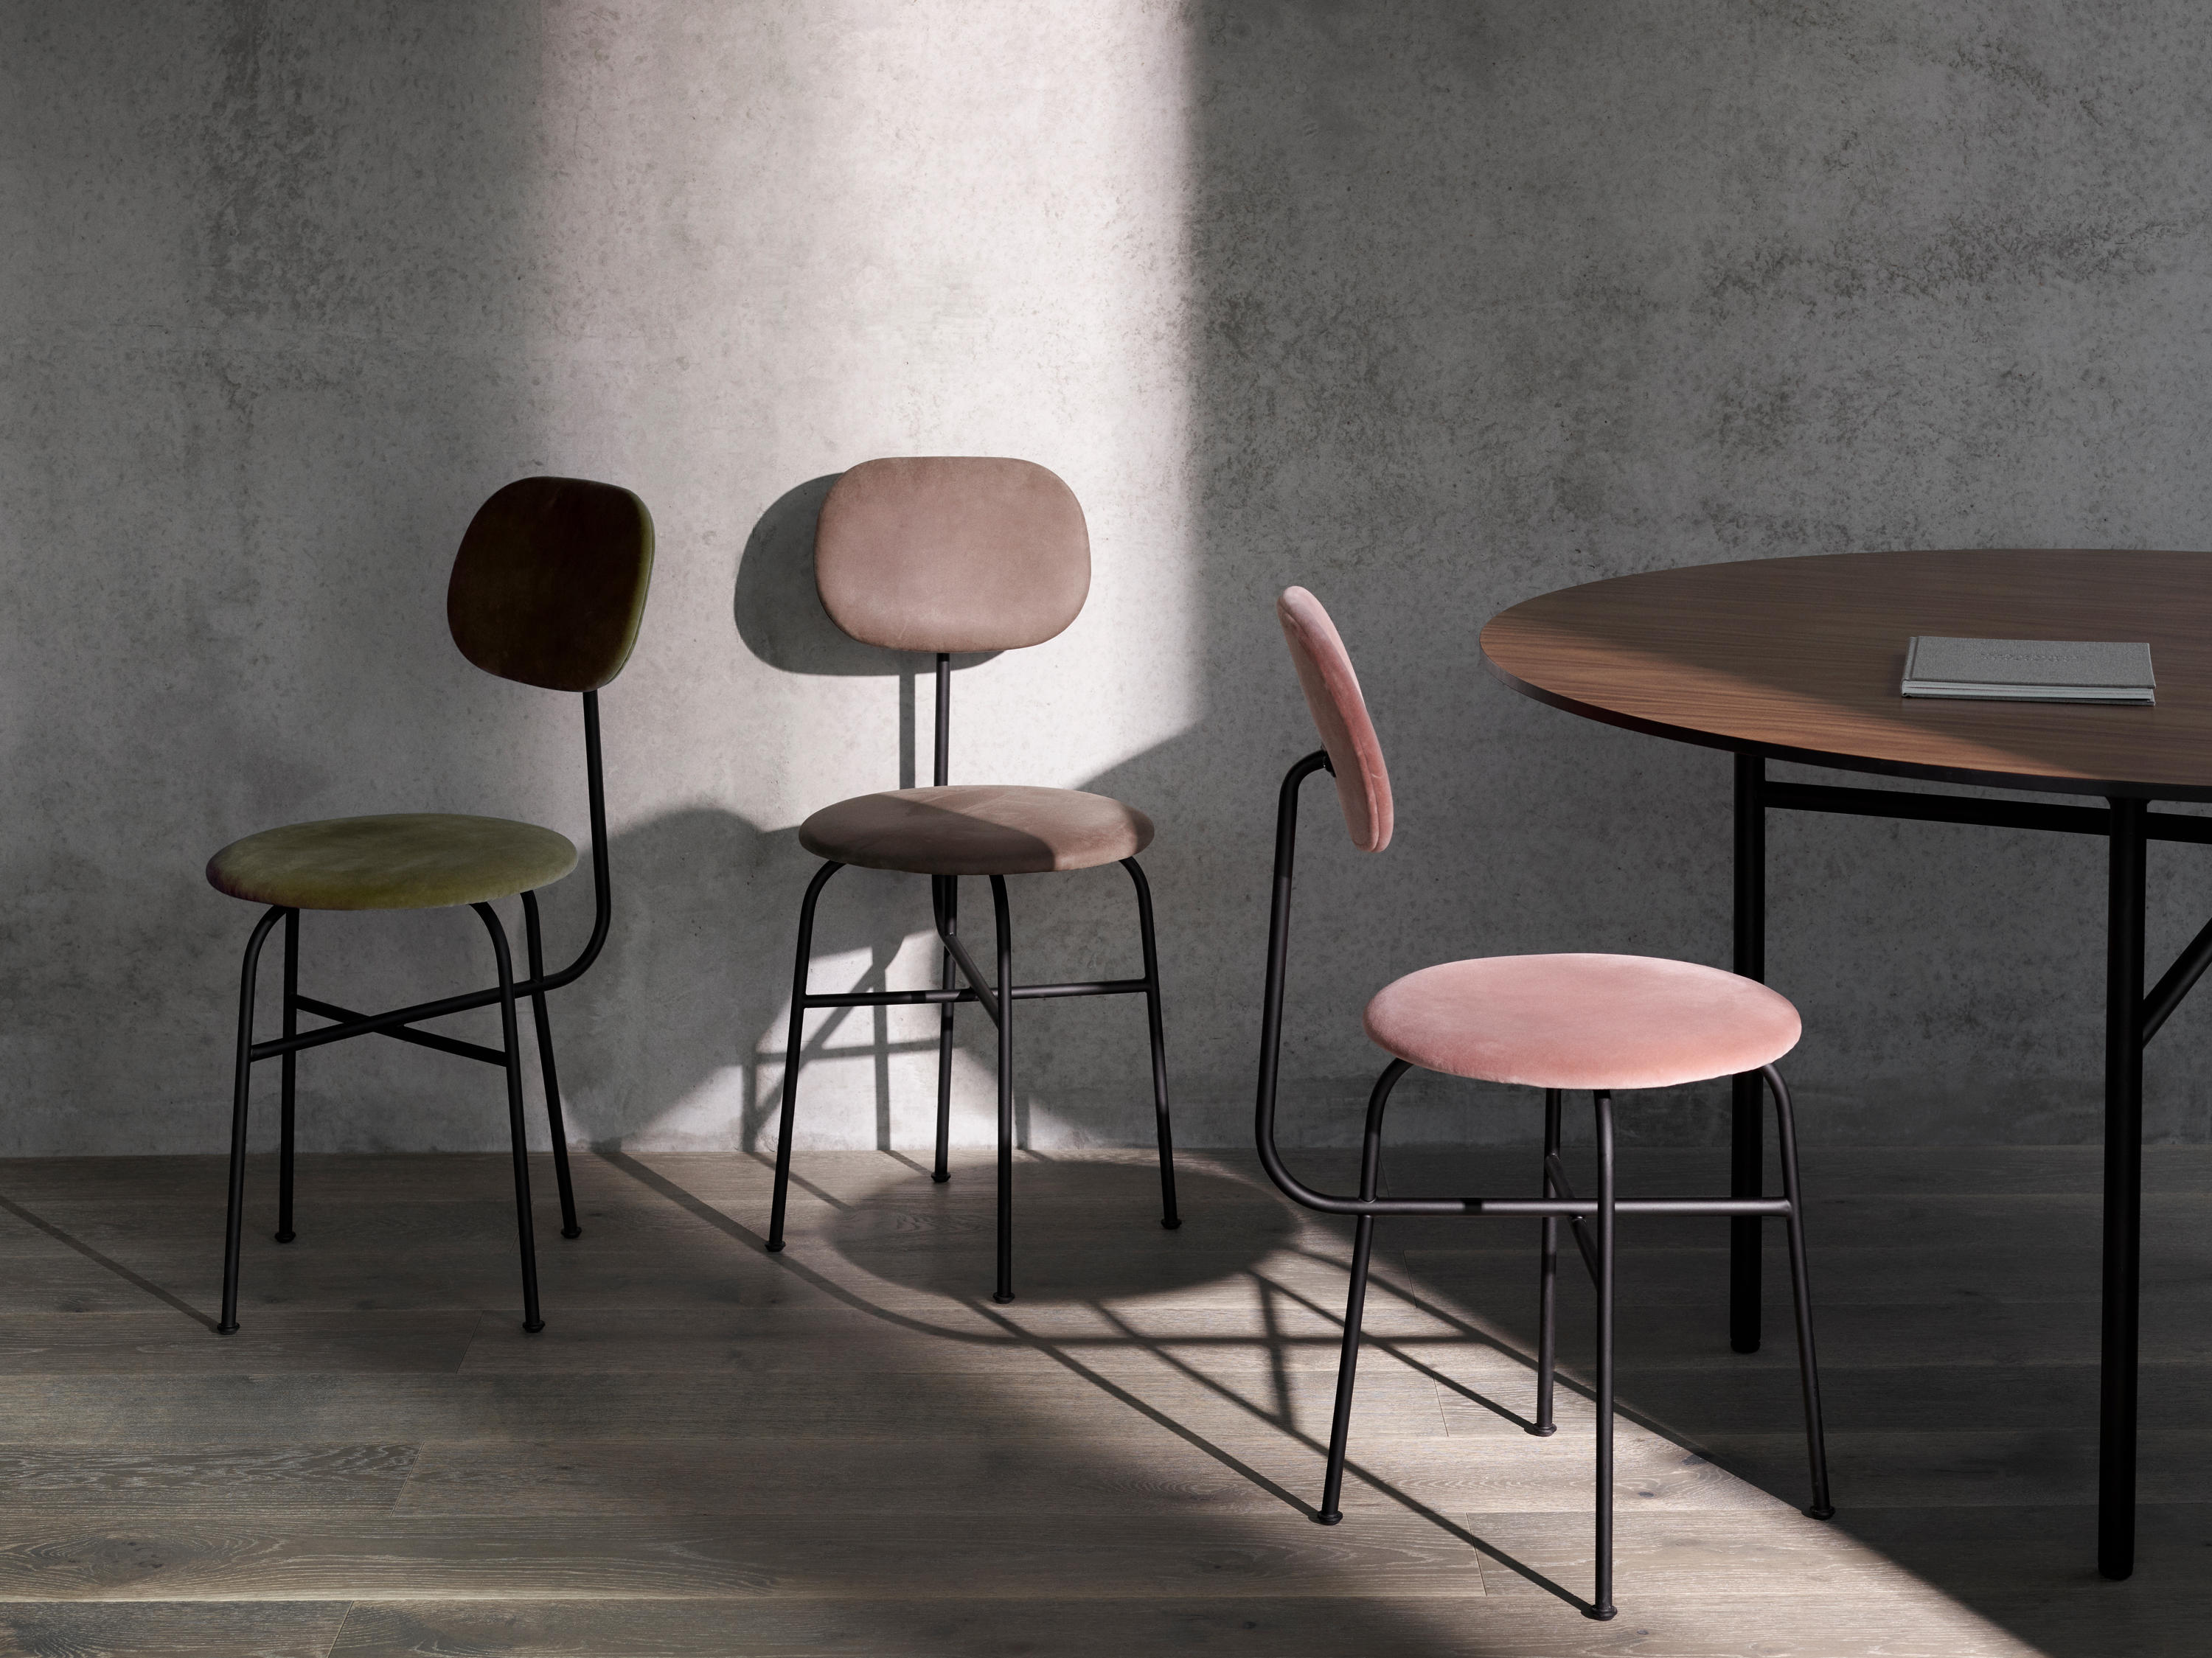 AFTEROOM DINING CHAIR 3 | BLACK - Stühle von MENU | Architonic